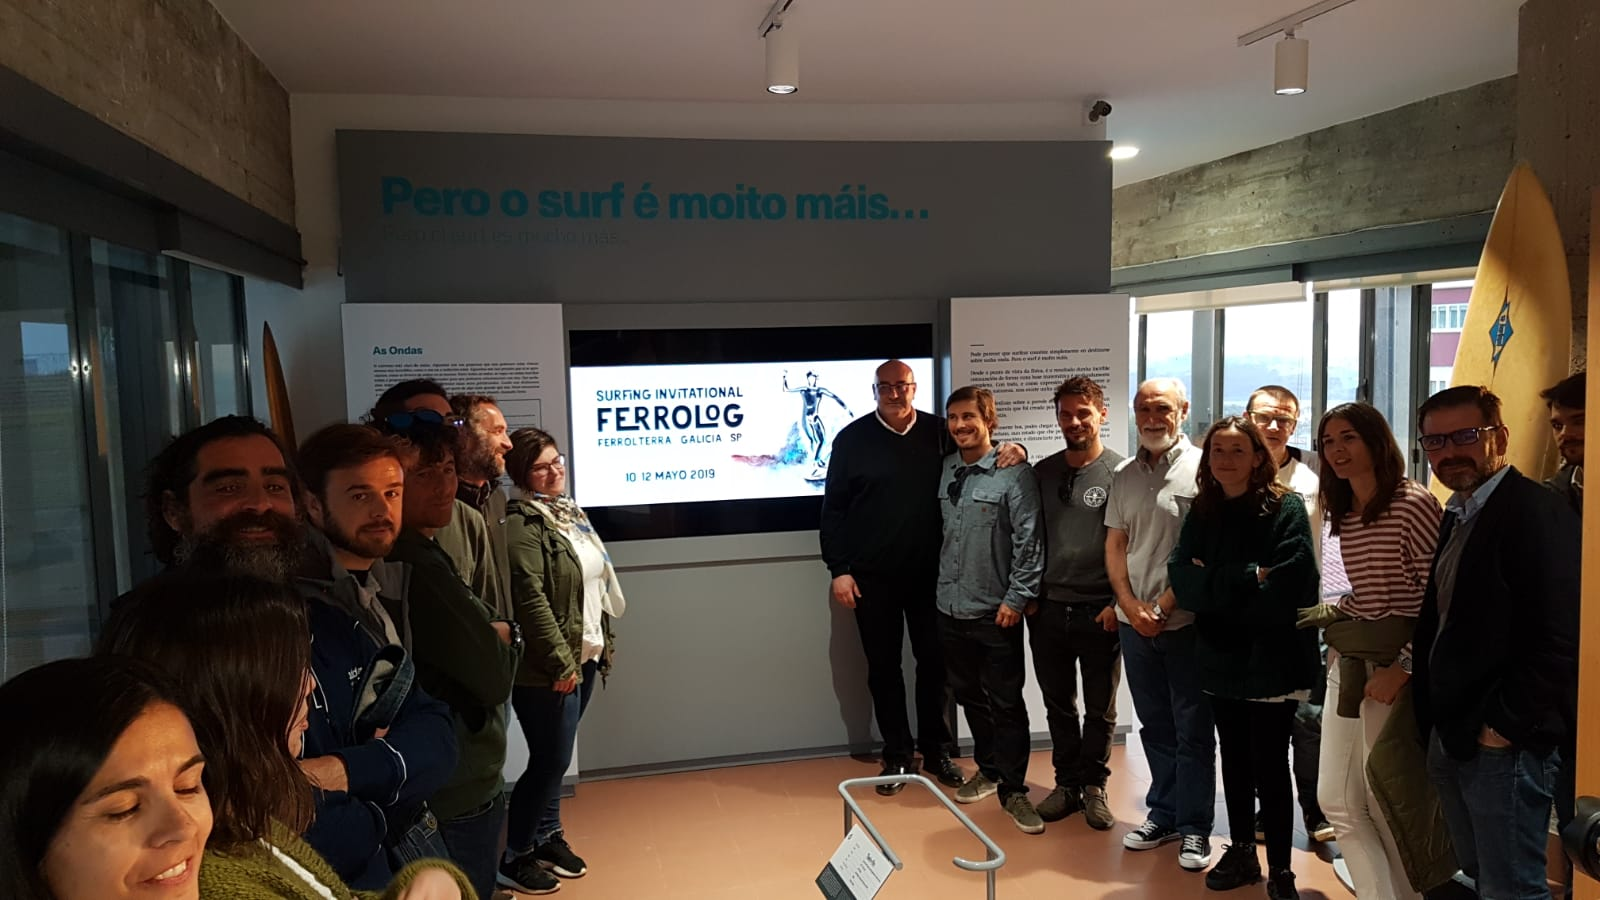 The Ocean Surfing Museum hosted the presentation of the Ferrolog Surfing Invitational